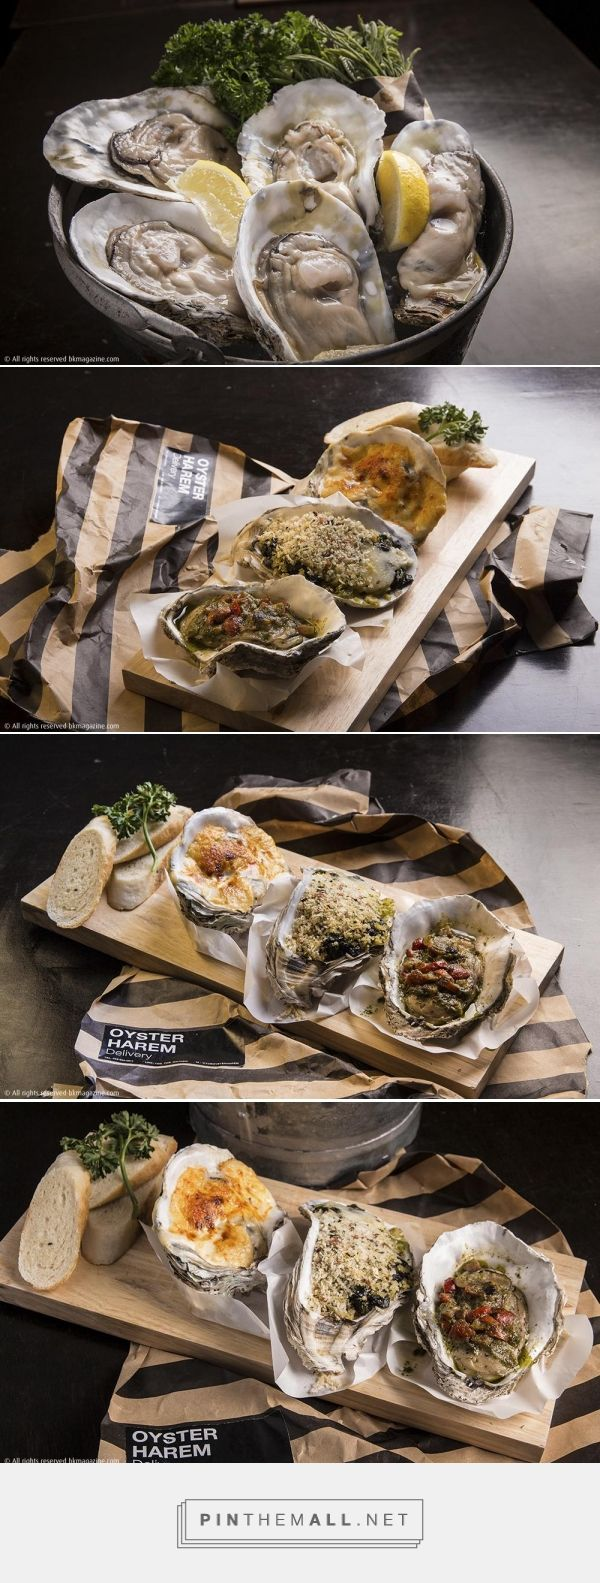 Oyster Harem Bangkok | Seafood restaurant via BK Magazine Online curated by Packaging Diva PD. OMG, Am I ready to try this place : )